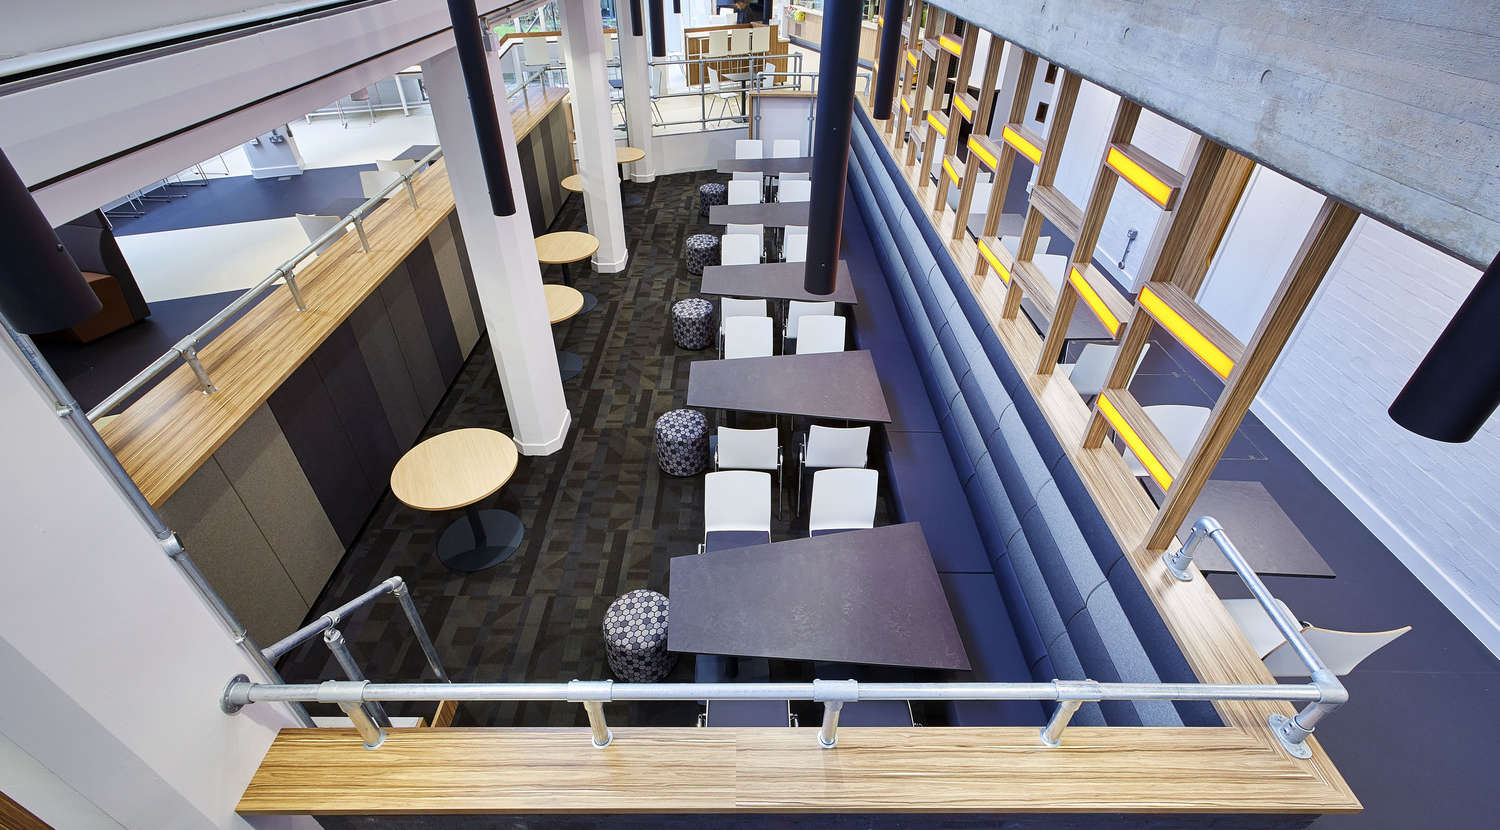 View of tables and bench seating from an office atrium